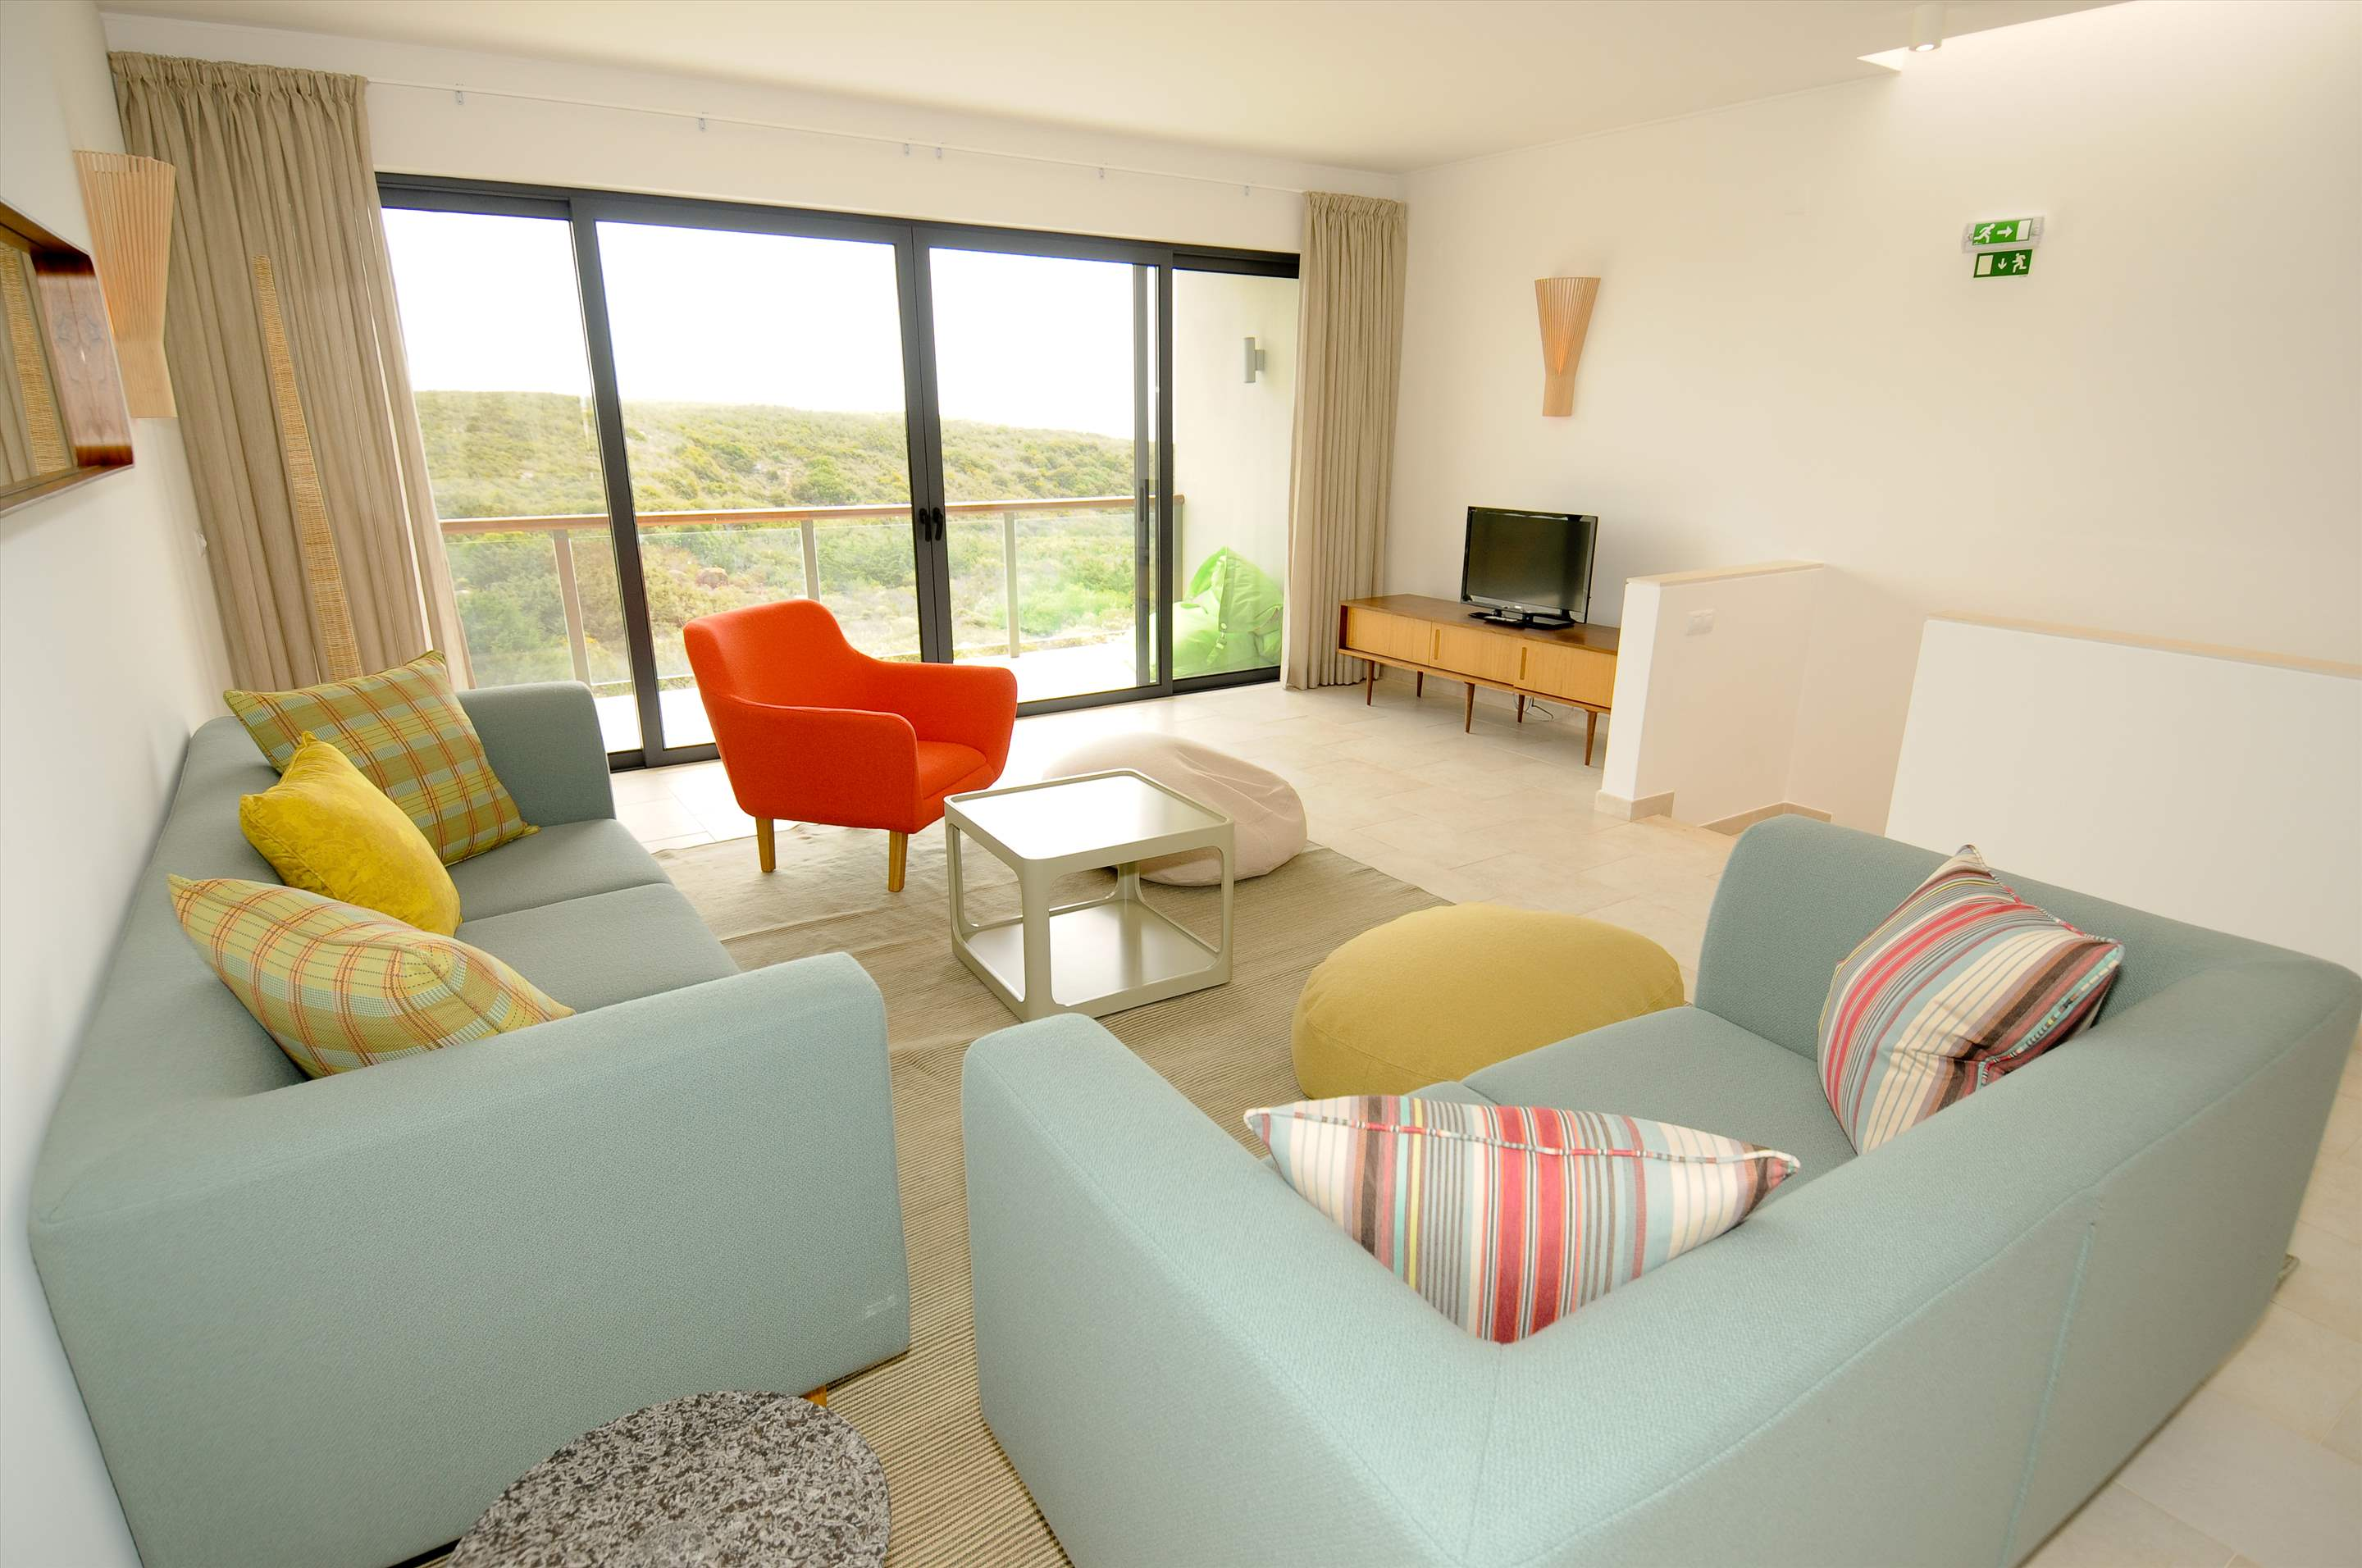 Martinhal Village Bay House, Master Bay House Three Bedroom, 3 bedroom villa in Martinhal Sagres, Algarve